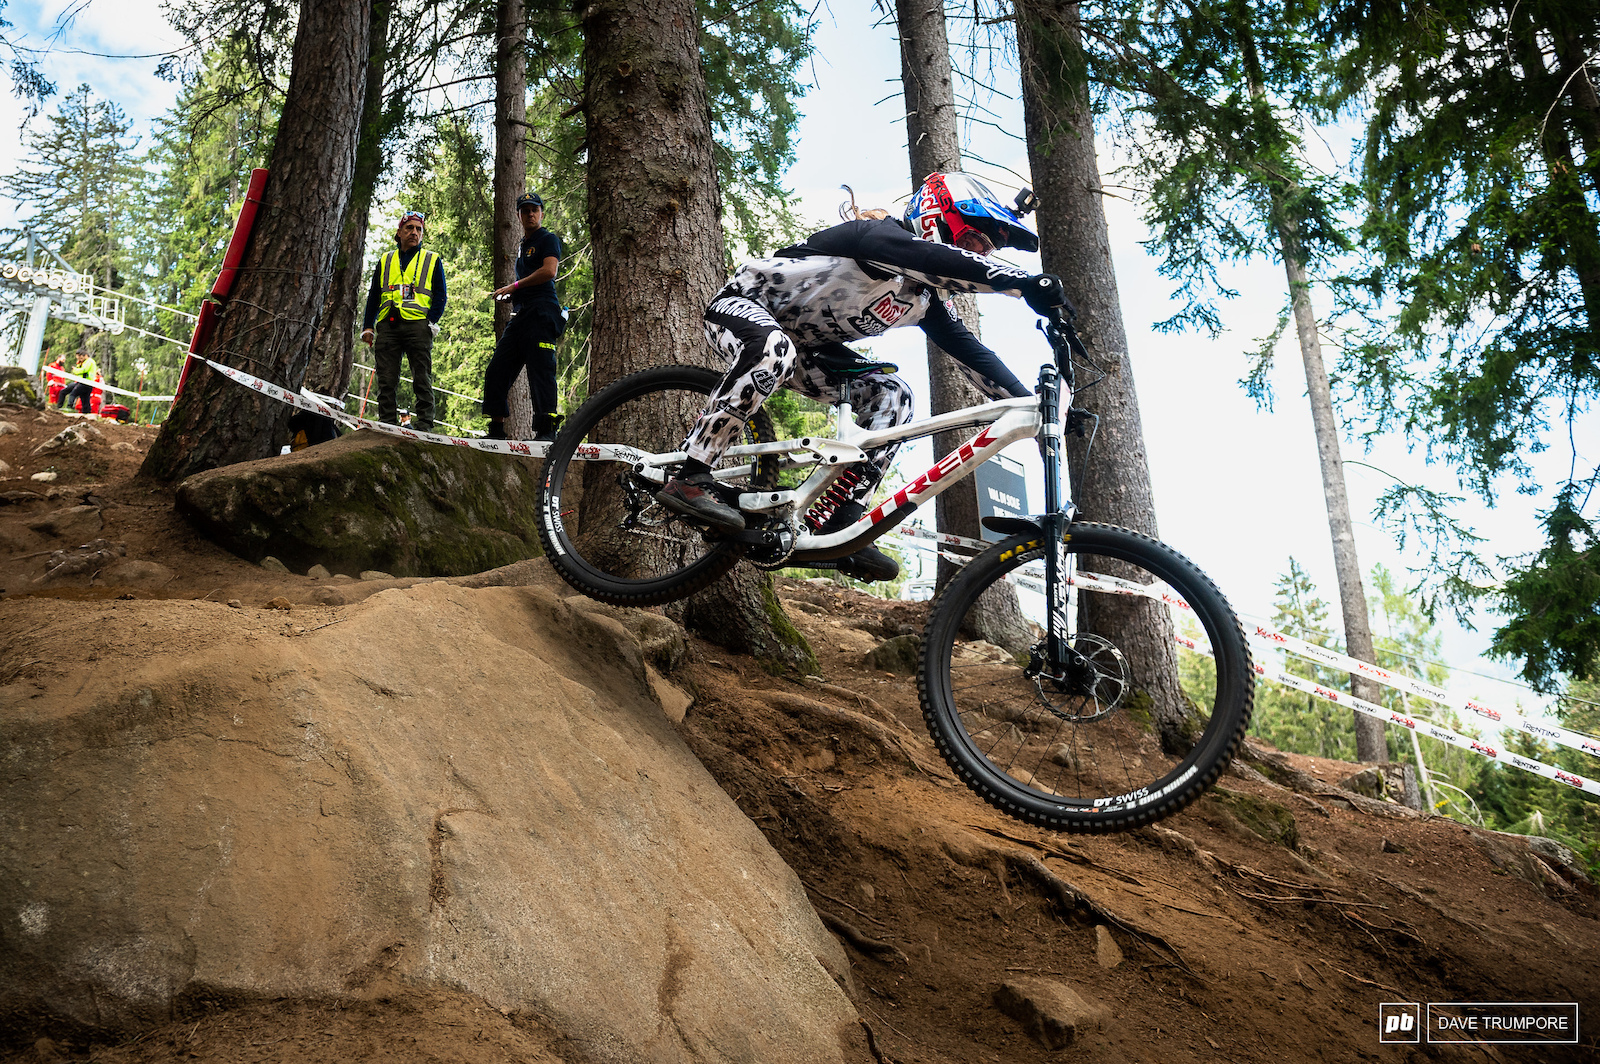 Vali Holl looking for some redemption after a disappointing World Champs last year